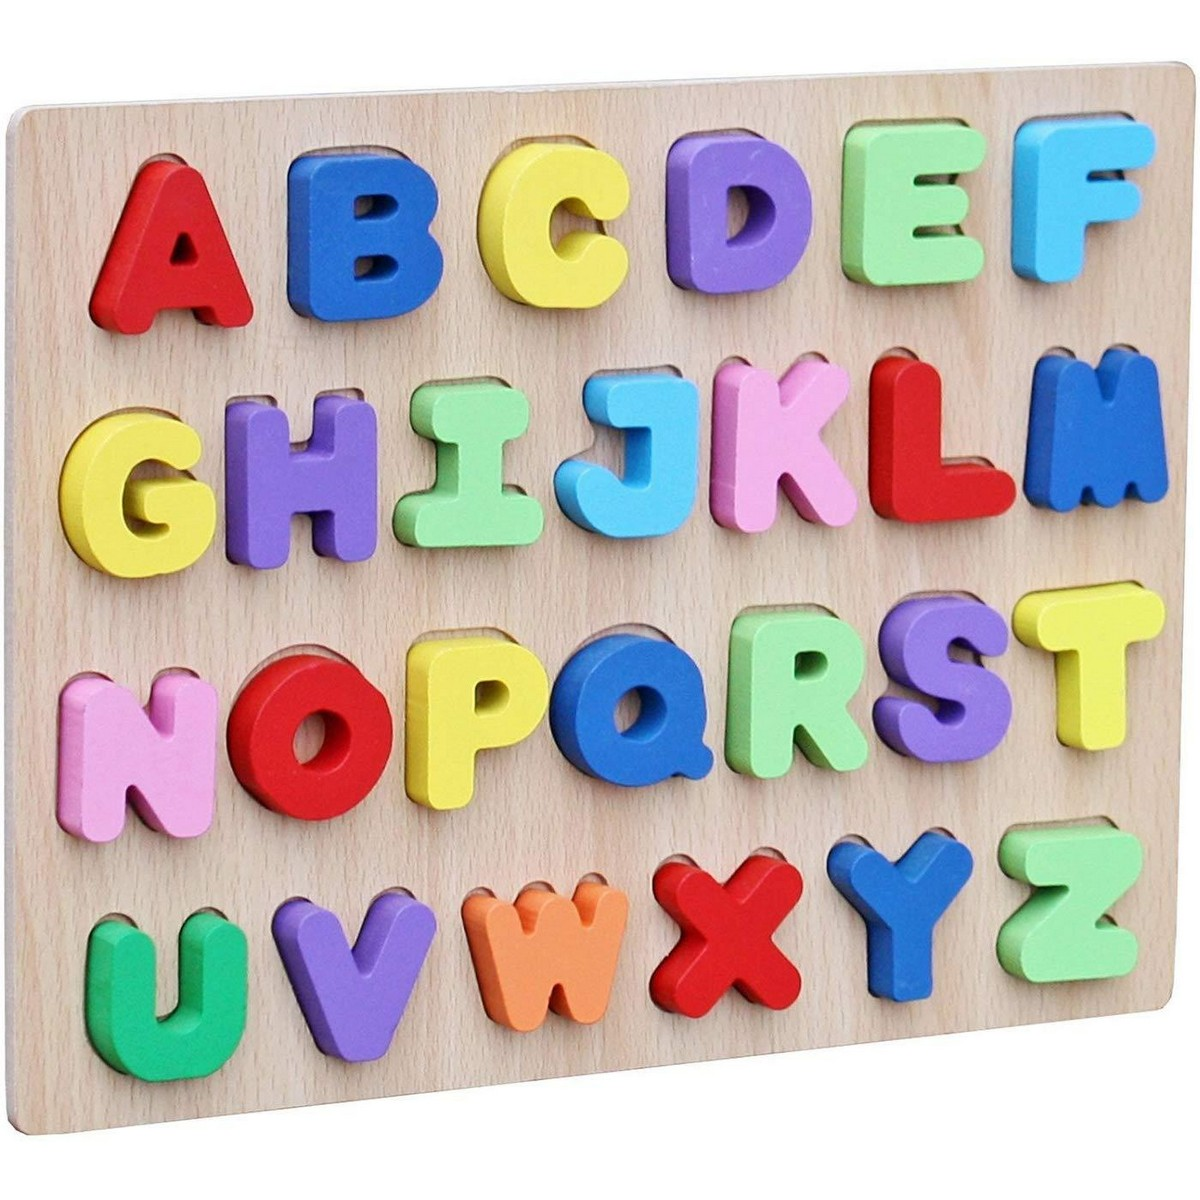 THICK WOODEN 3D BOARD PUZZLES (ALPHABETS) 26 LETTERS